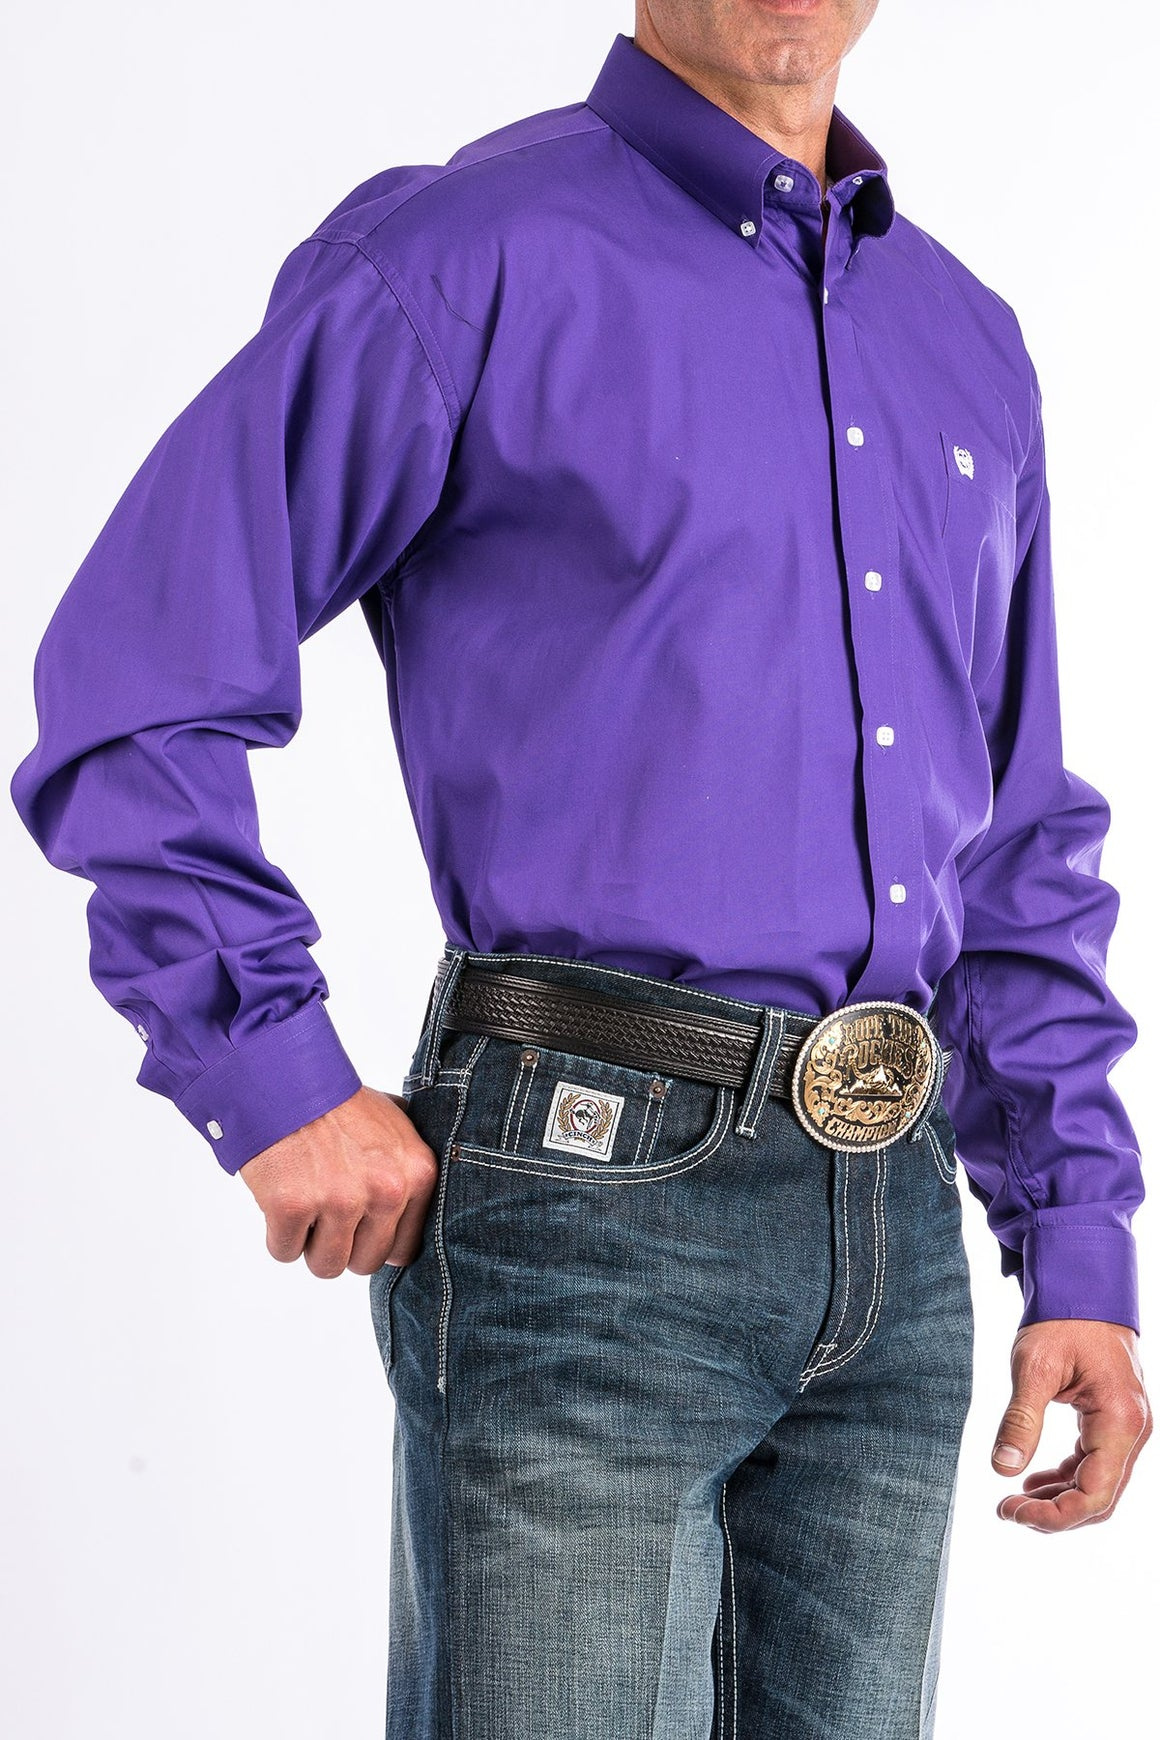 Cinch Solid Purple Western Button Down Shirt